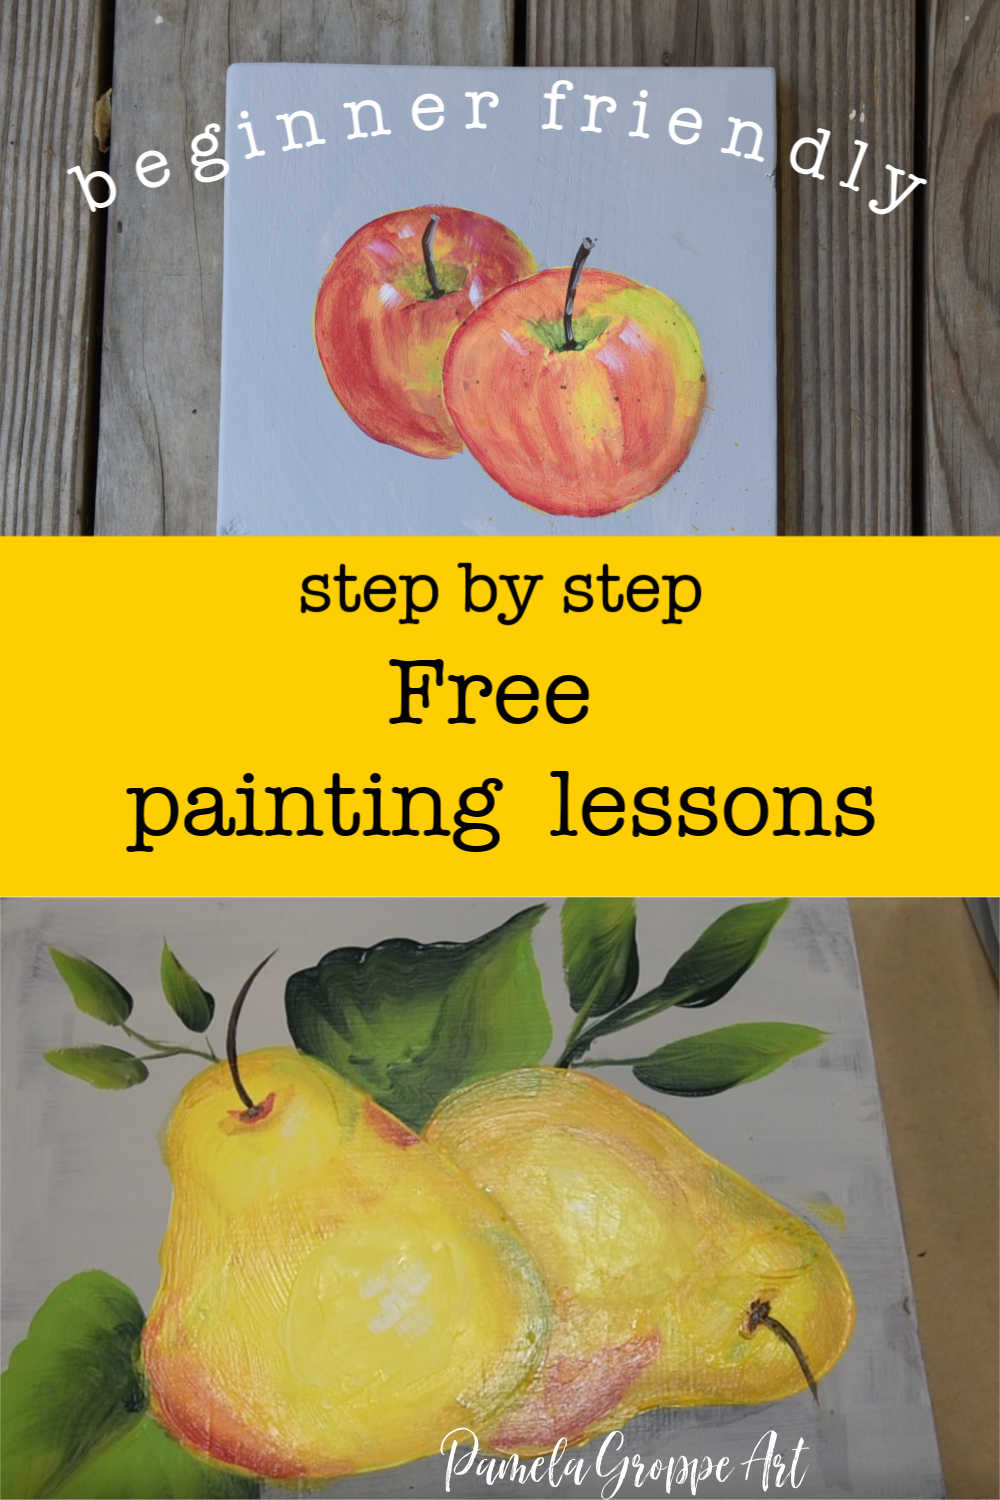 Acrylic apple painting and pear painting with text overlay, beginner friendly step by step free painting lessons, pamela groppe art